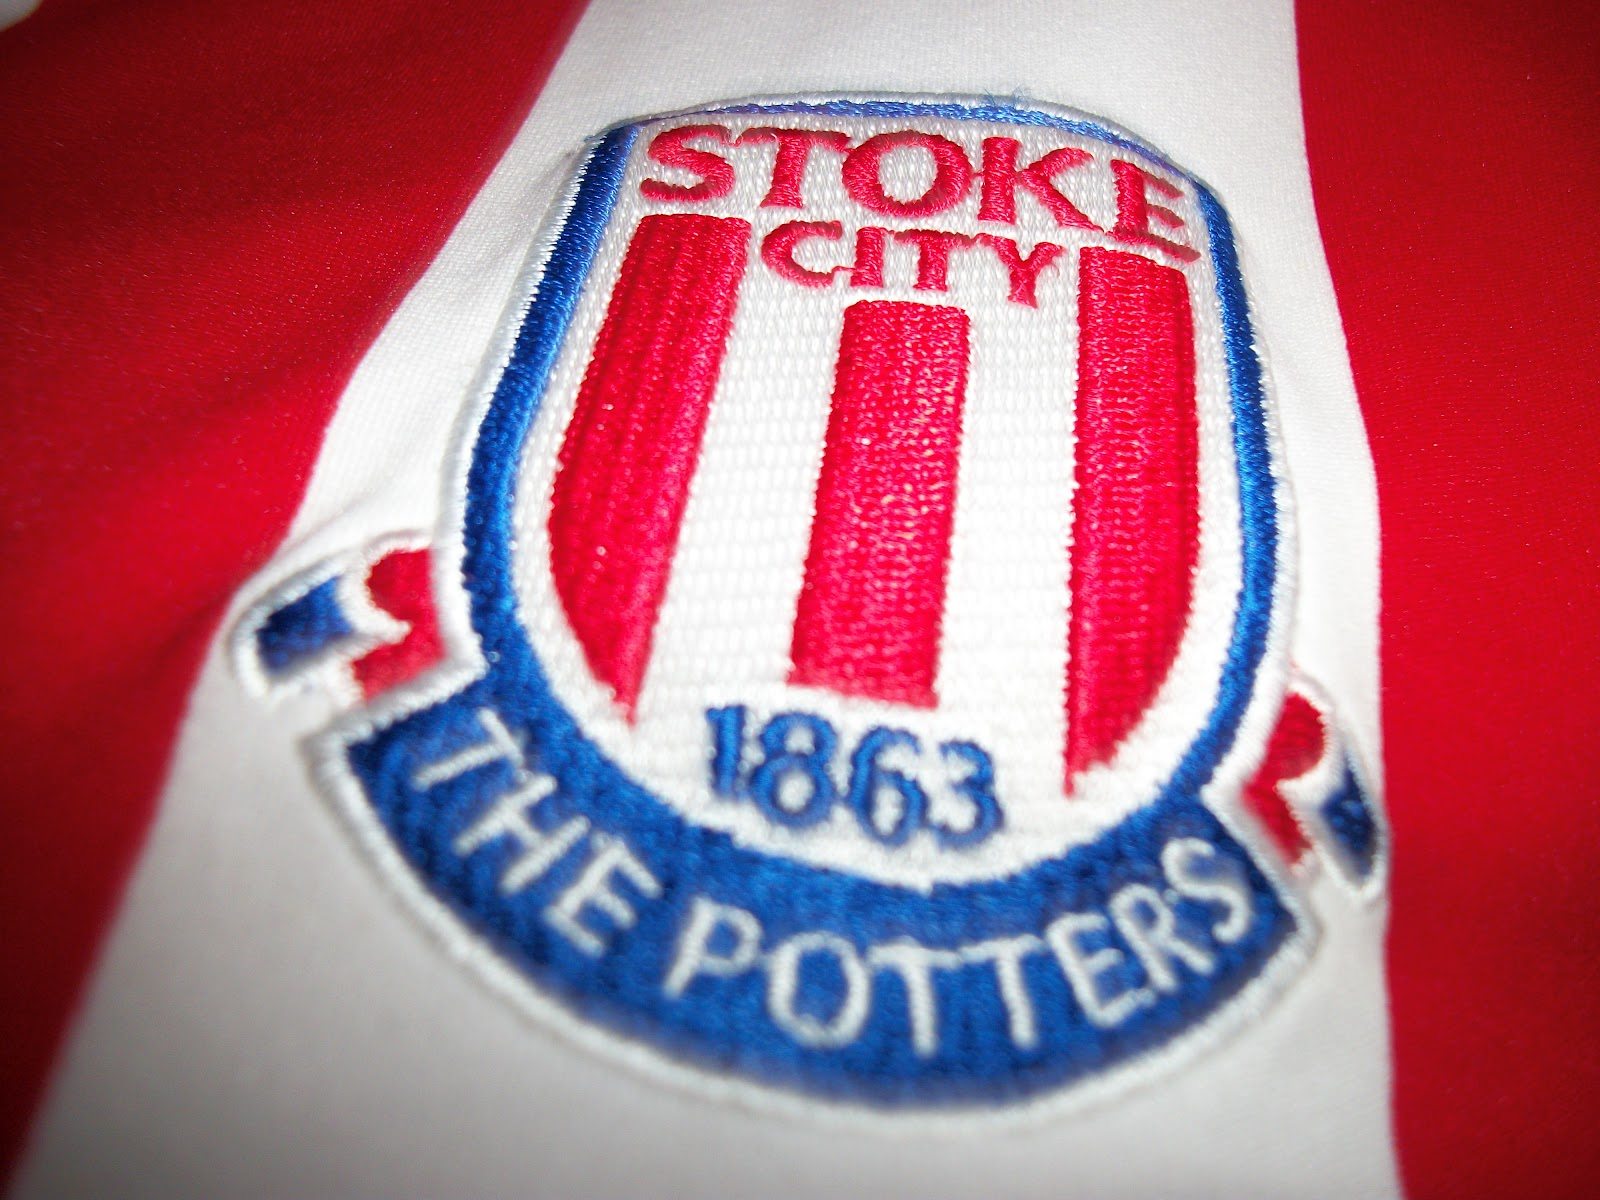 Stoke City FC Symbol Wallpaper